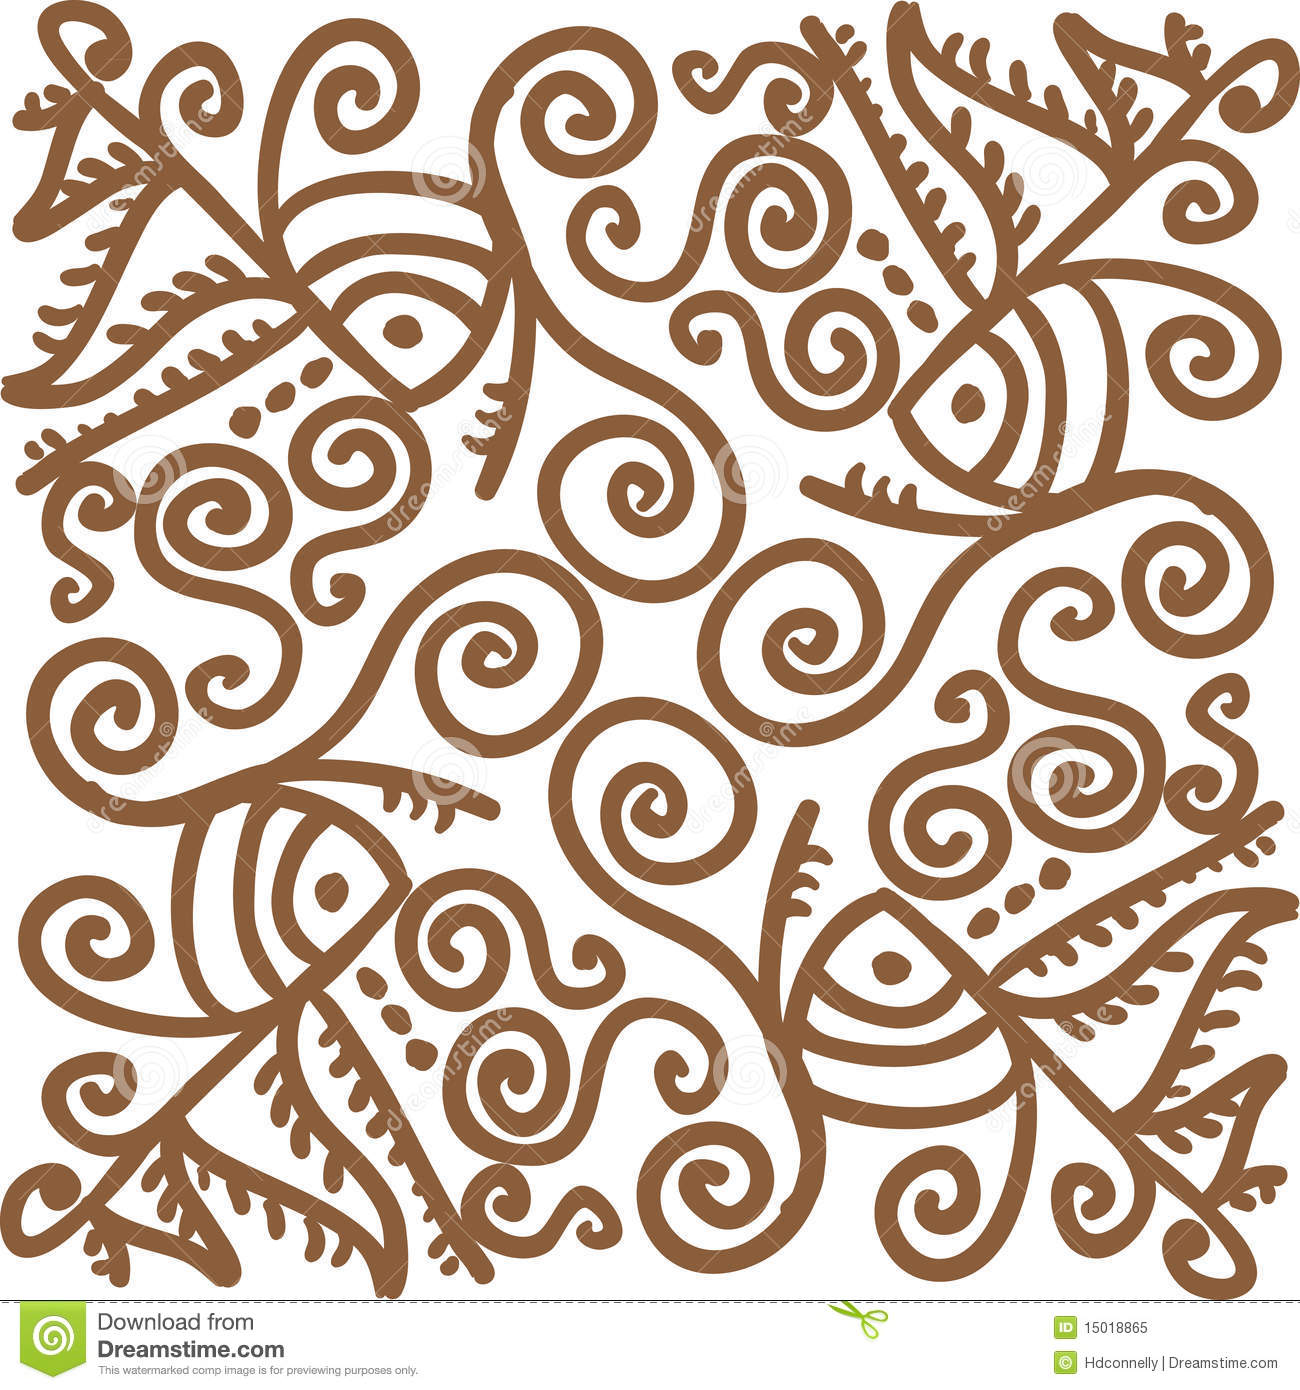 Intricate hand-drawn line art design - for use as border or seamless ...